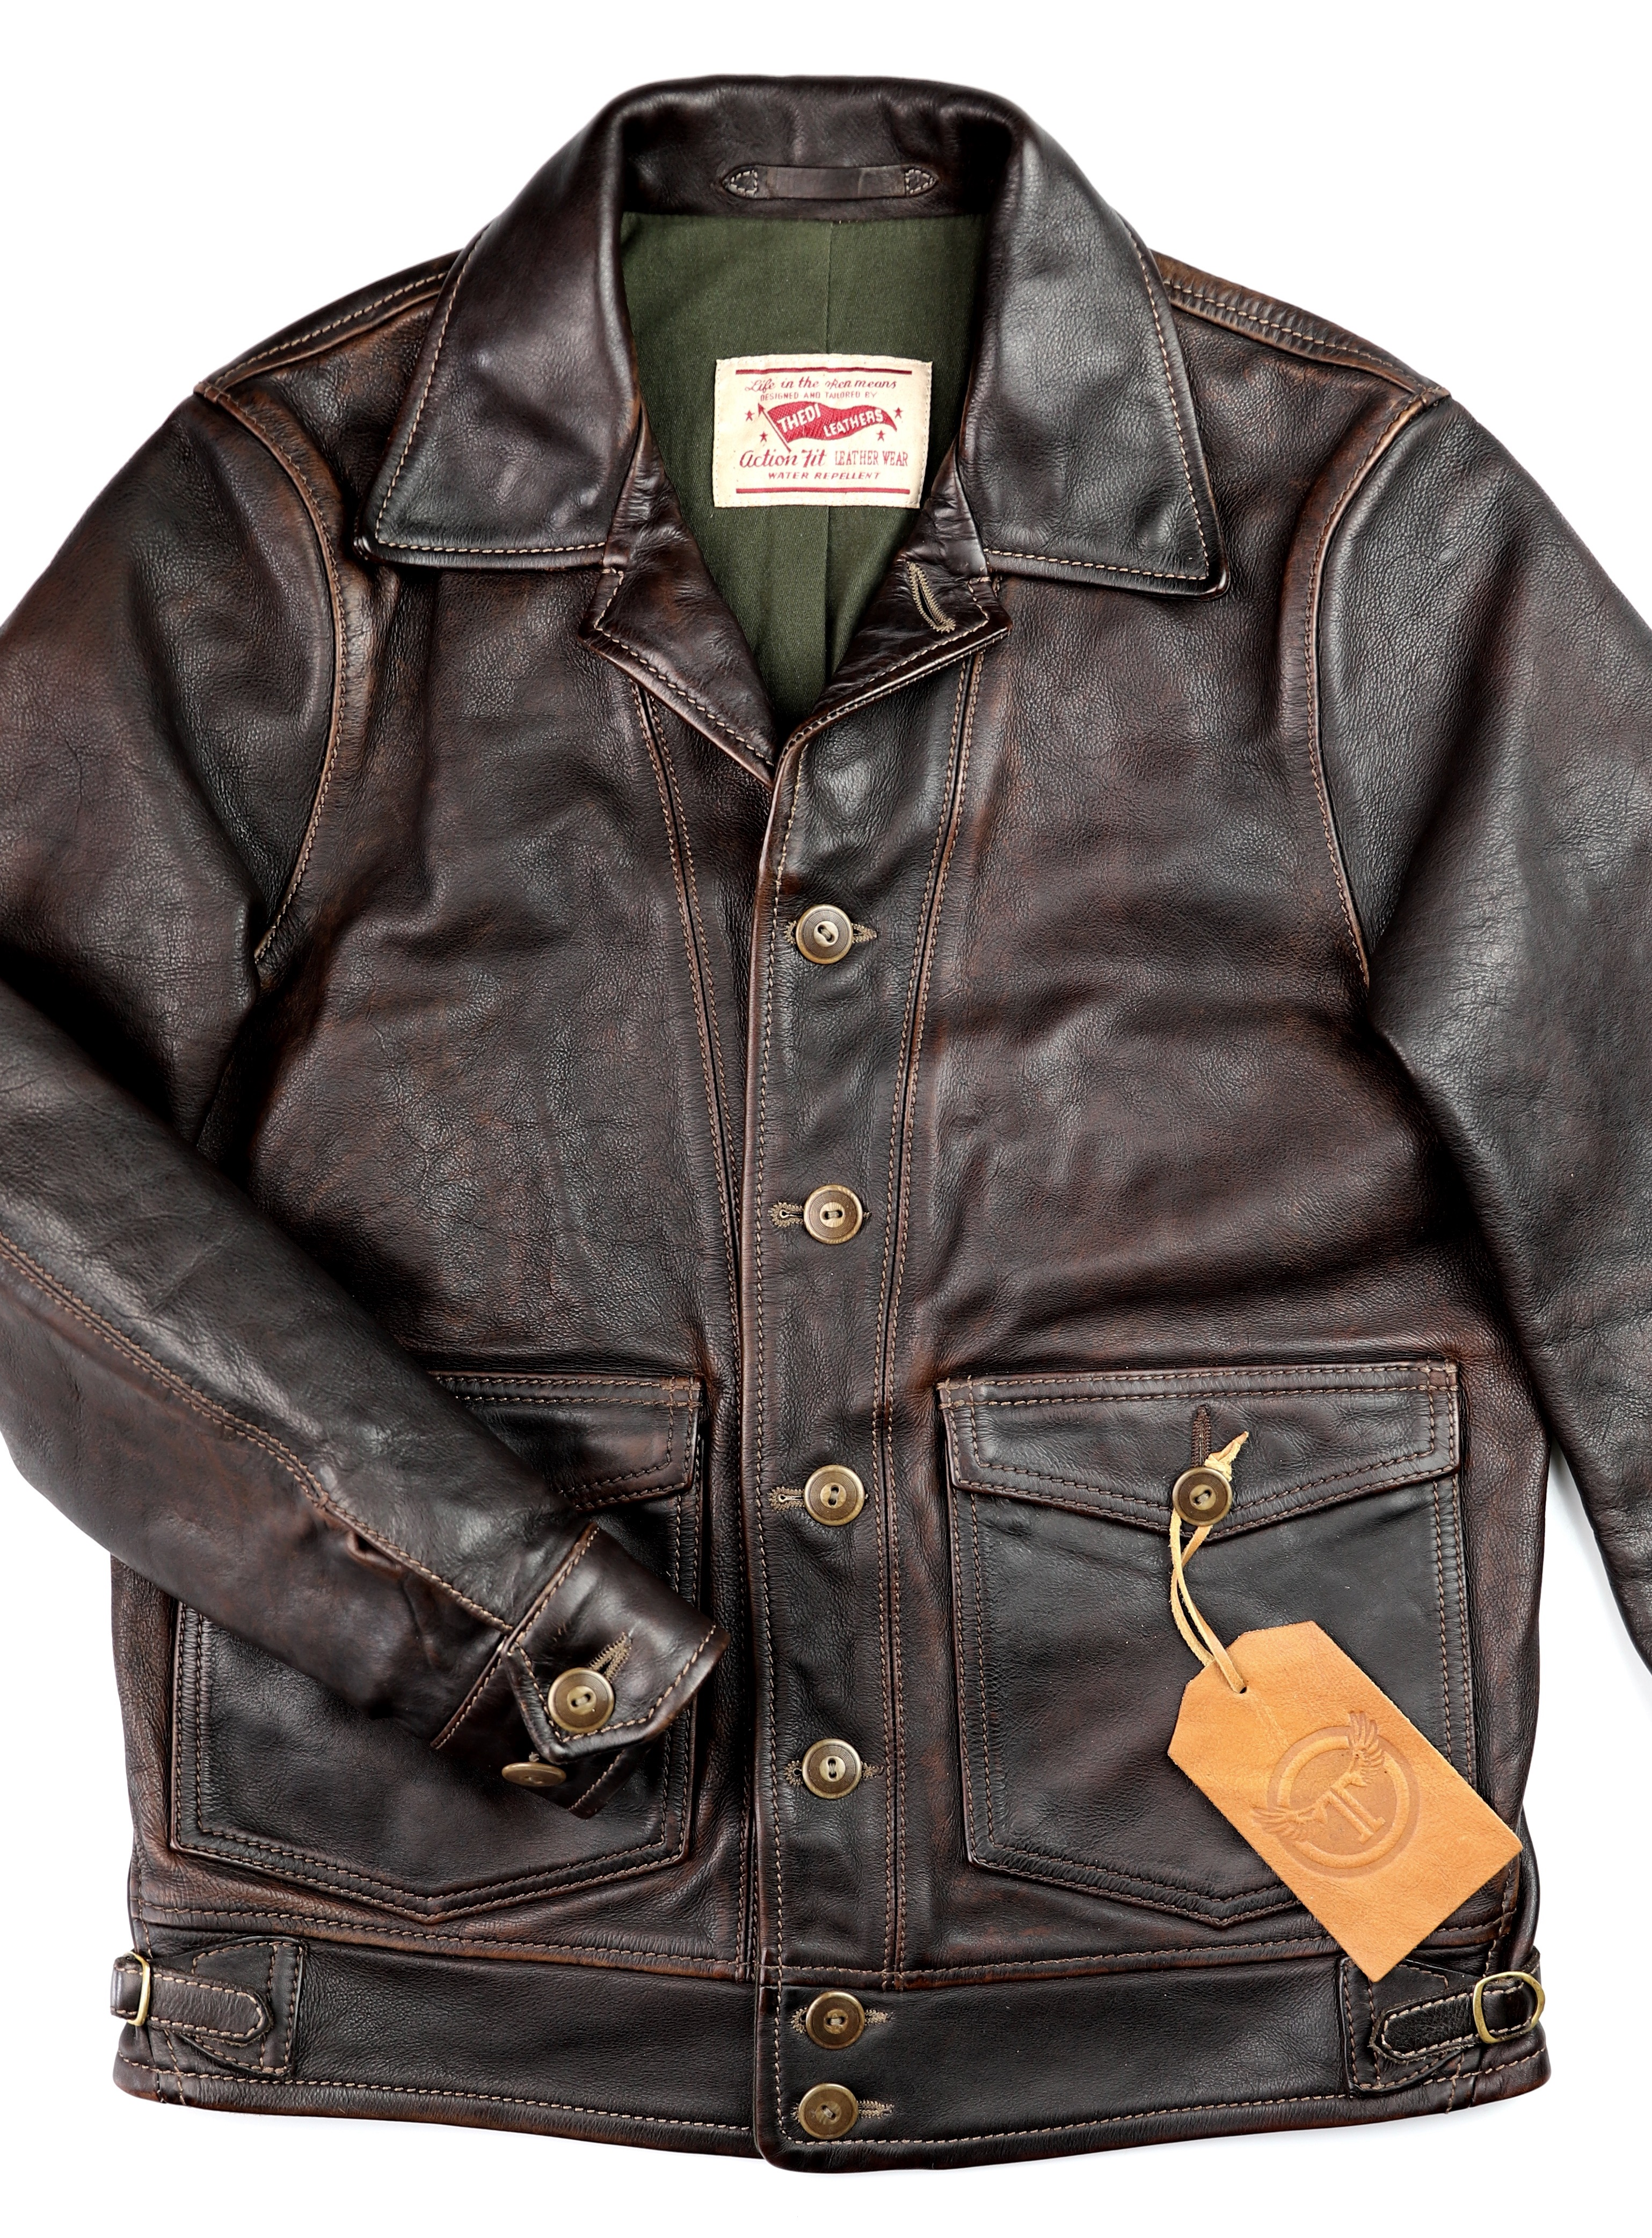 Thedi Niko Button-Up Hand-Dyed Brown Cowhide JG1 front.jpg